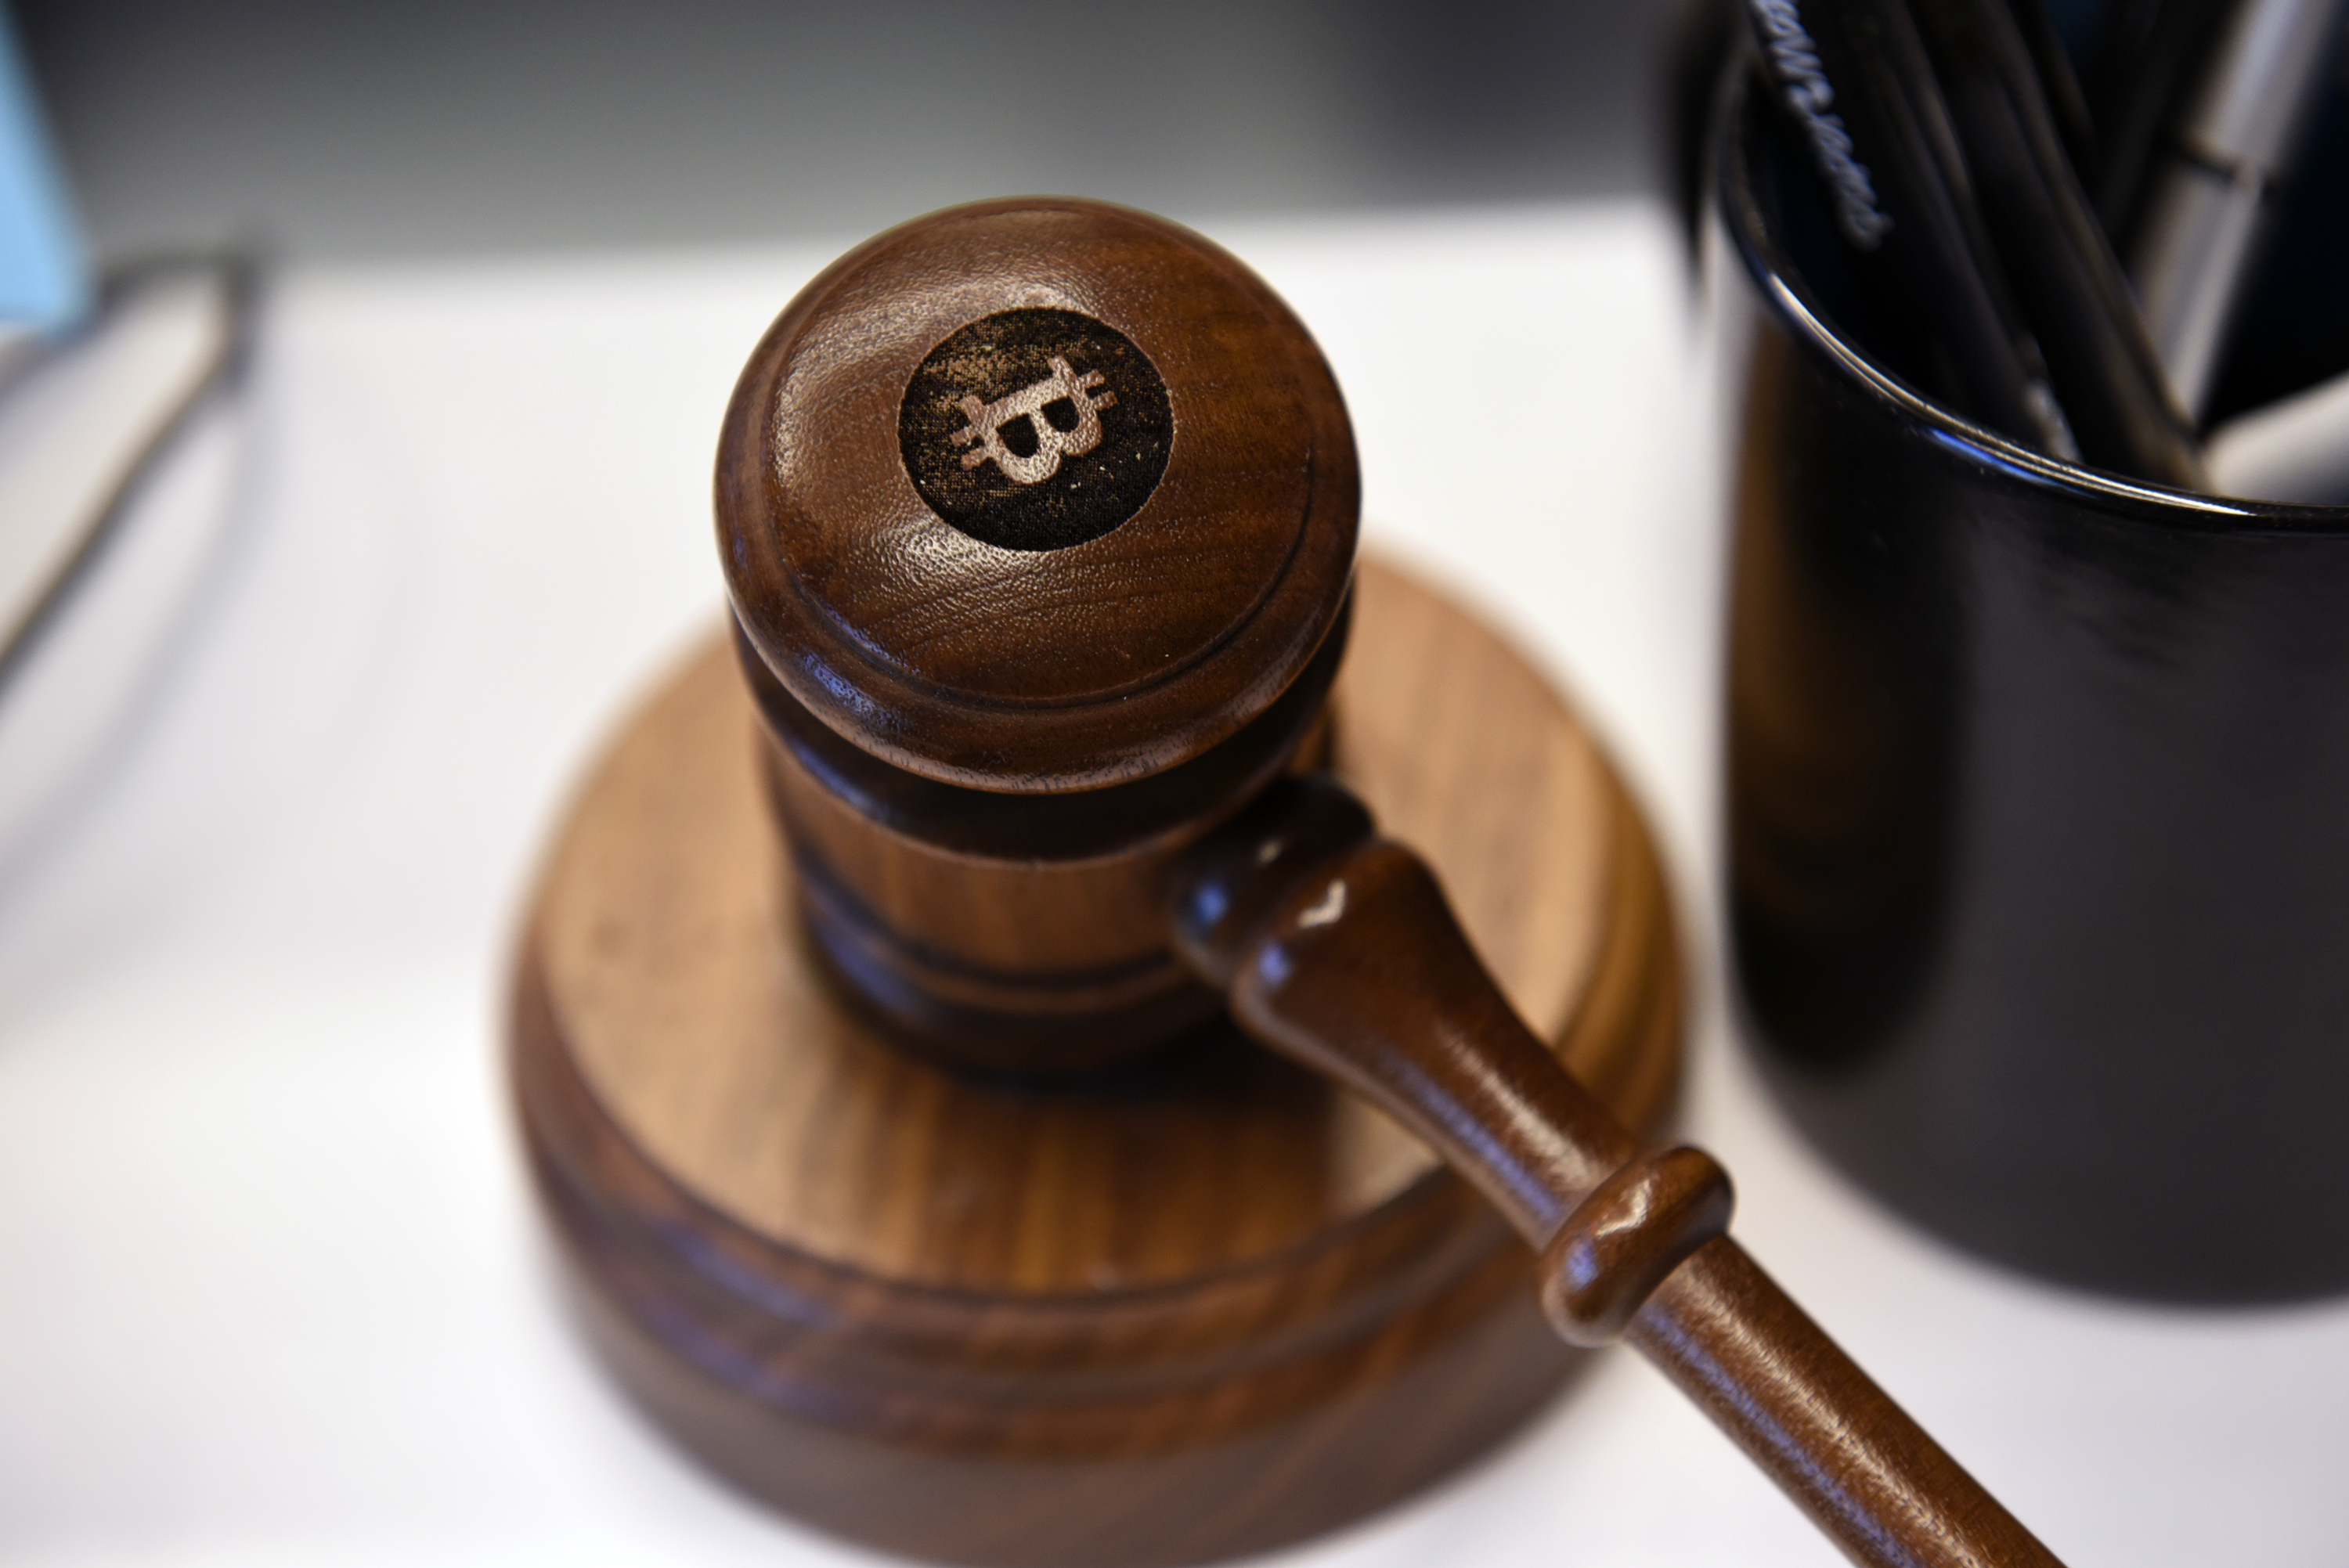 A Bitcoin gavel is seen on a desk at the Coinbase Inc. office in San Francisco, California, U.S., on Friday, Dec. 1, 2017. Coinbase wants to use digital money to reinvent finance. In the company's version of the future, loans, venture capital, money transfers, accounts receivable and stock trading can all be done with electronic currency, using Coinbase instead of banks. Photographer: Michael Short/Bloomberg